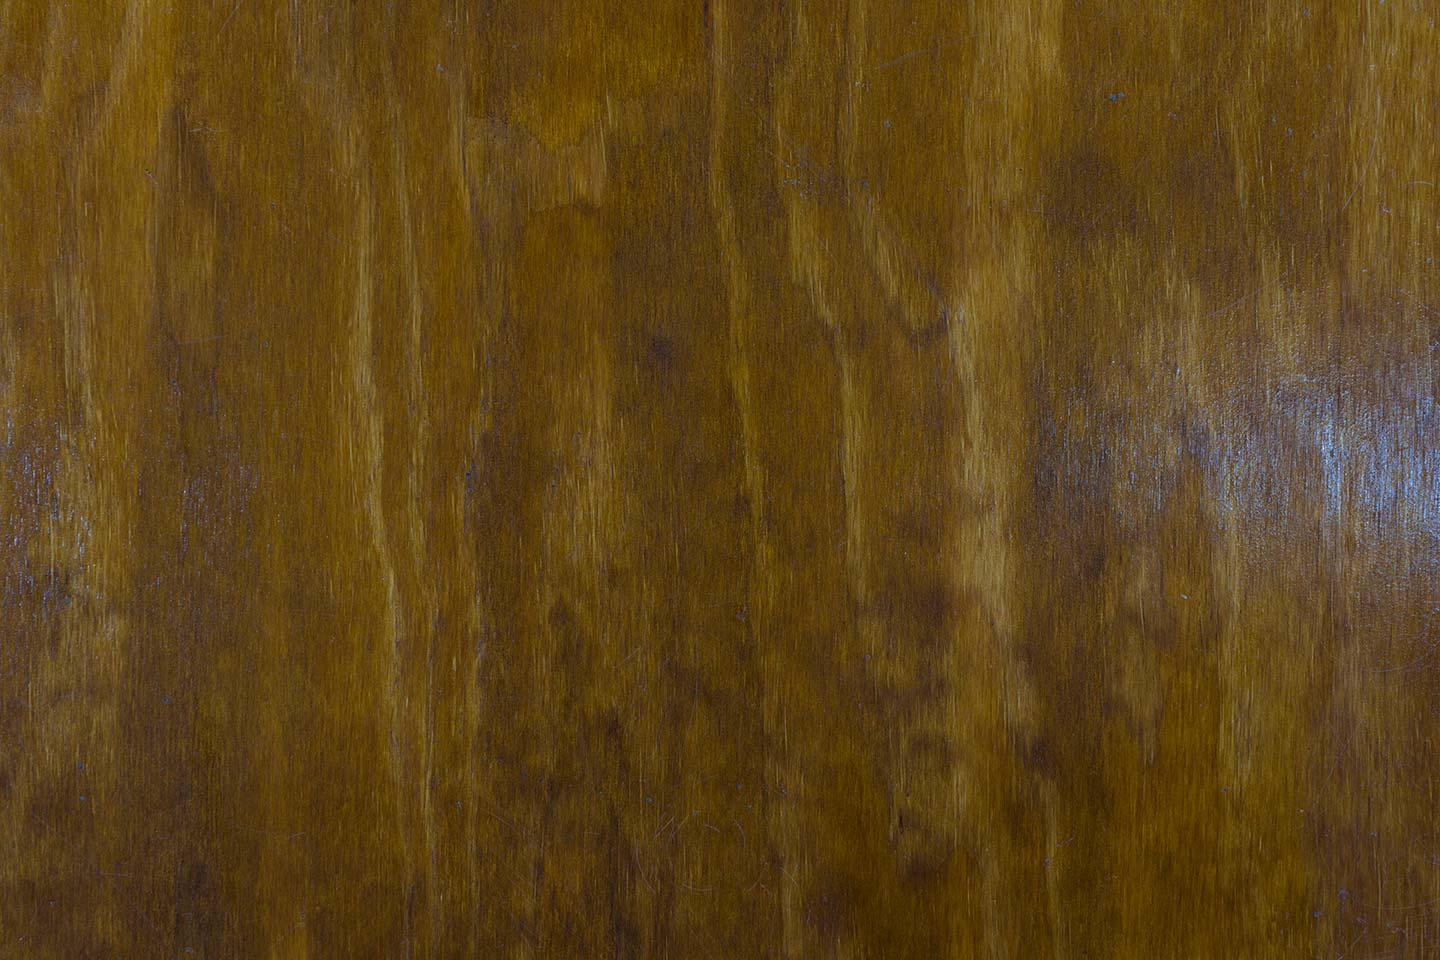 Stained-Oak-Timber-Flooring